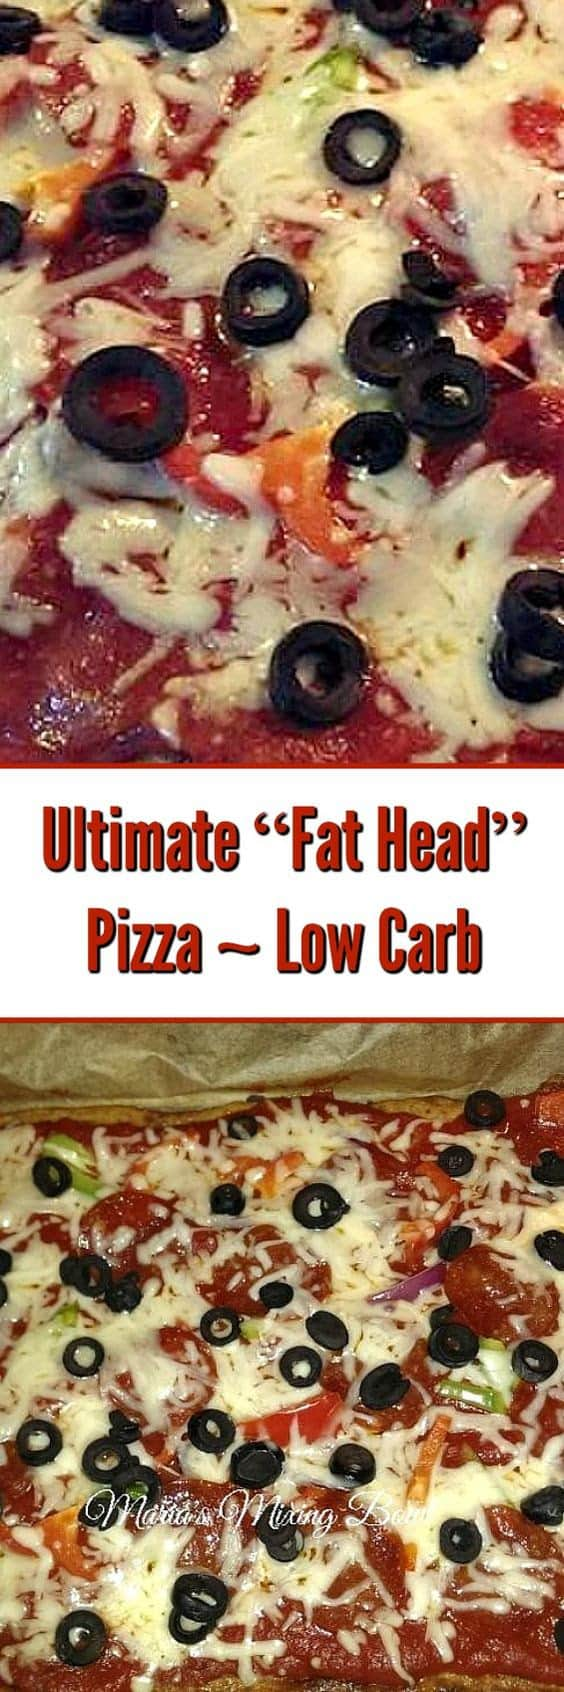 """The ultimate """"Fat Head"""" Pizza ~ Low Carb-You don't have to go without pizza just because you are eating low carb or grain-free! via @Mooreorlesscook"""